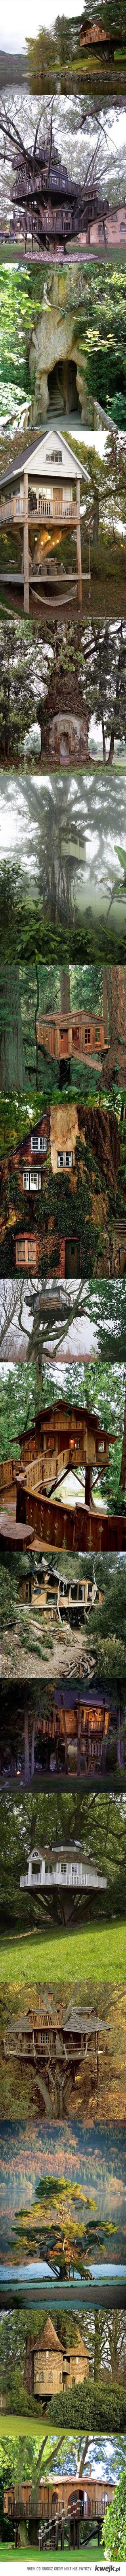 I wanna live in a tree house like this!!!